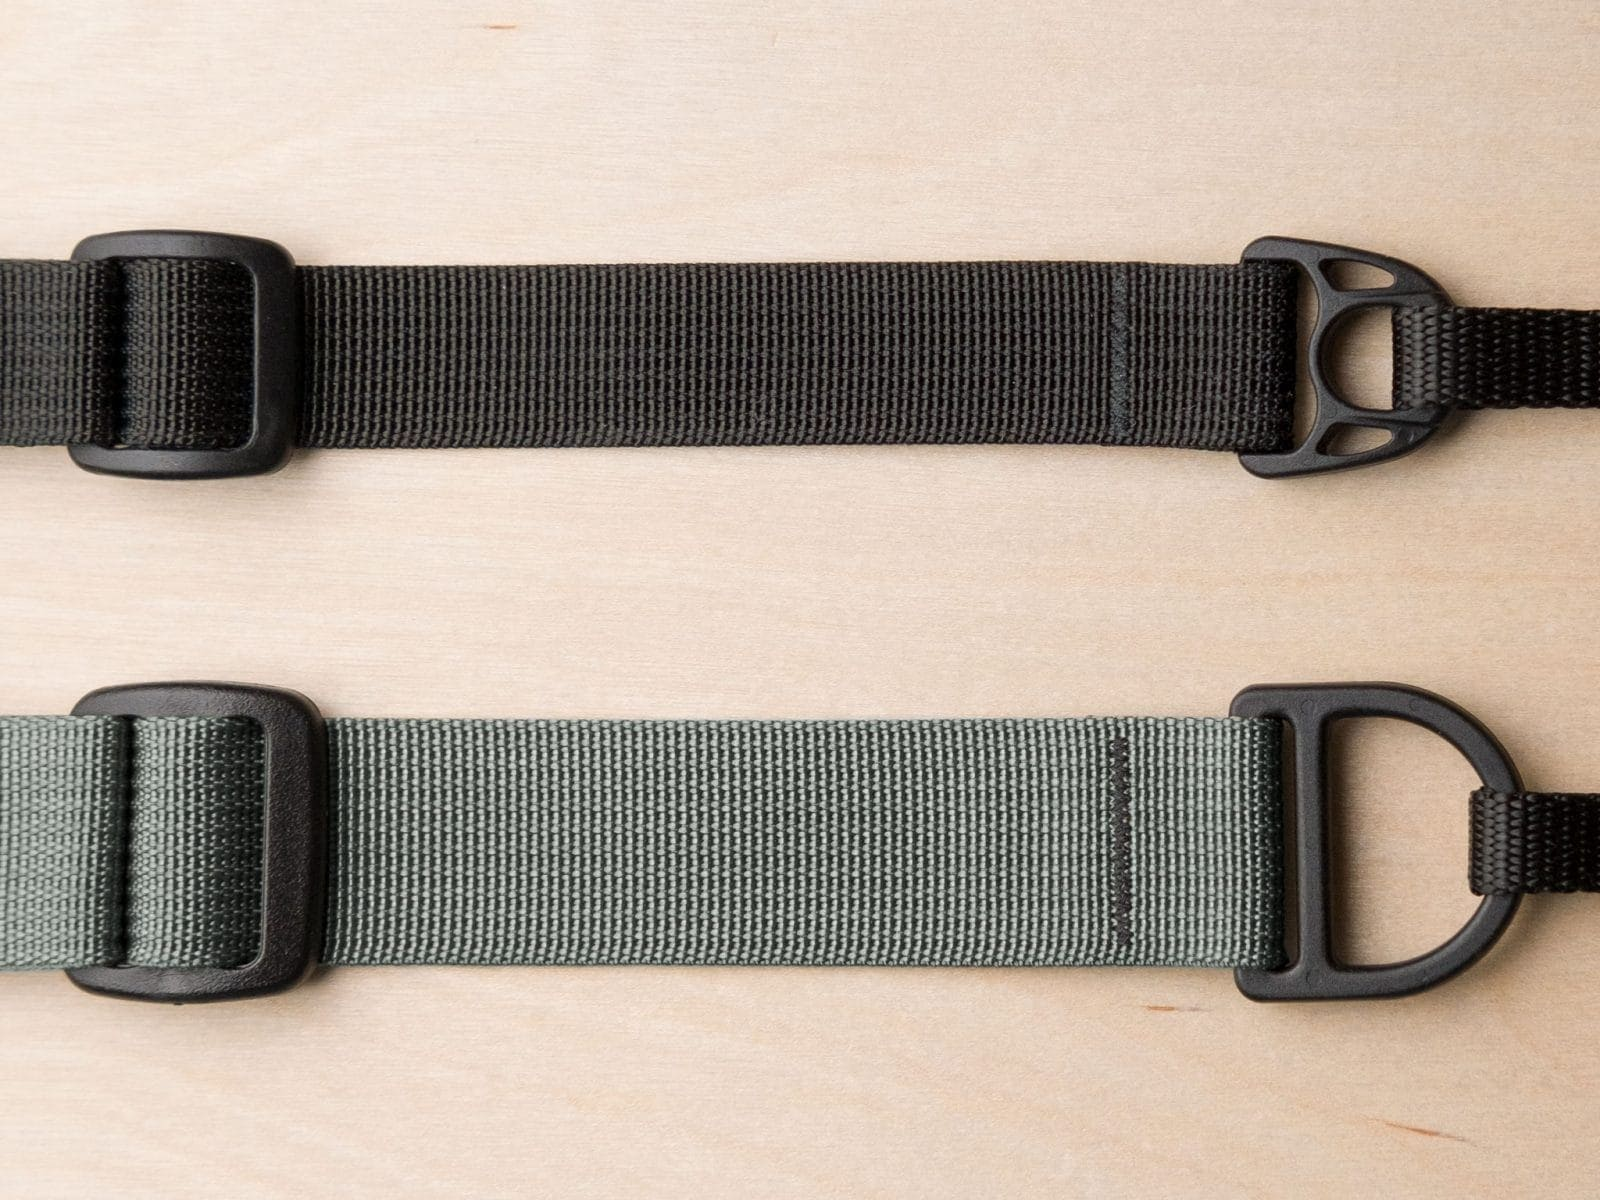 F1ultralight camera strap vs F1